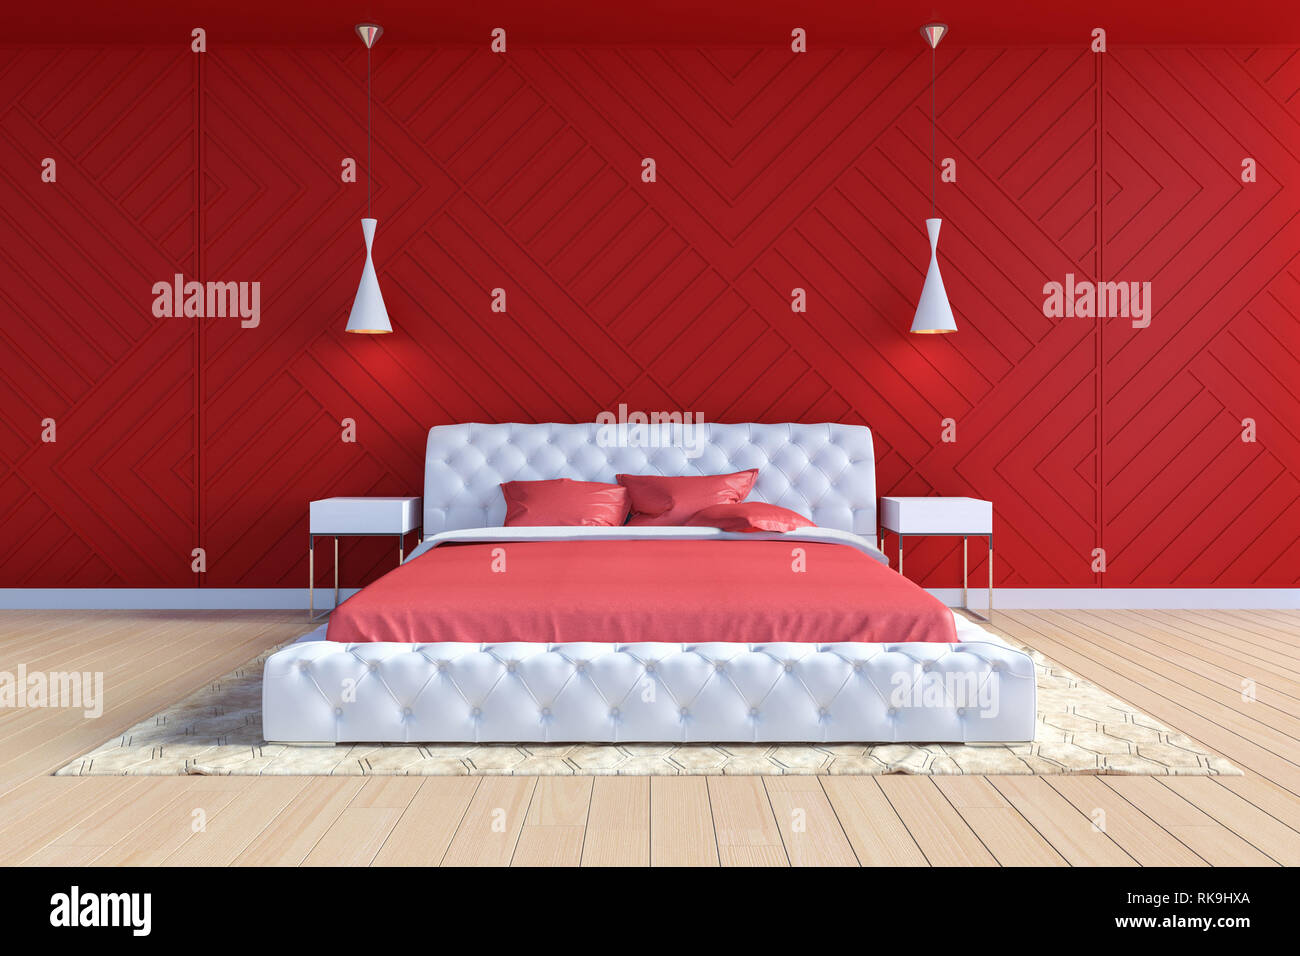 Modern Contemporary Bedroom Interior In Red And White Color 3d Rendering Stock Photo Alamy